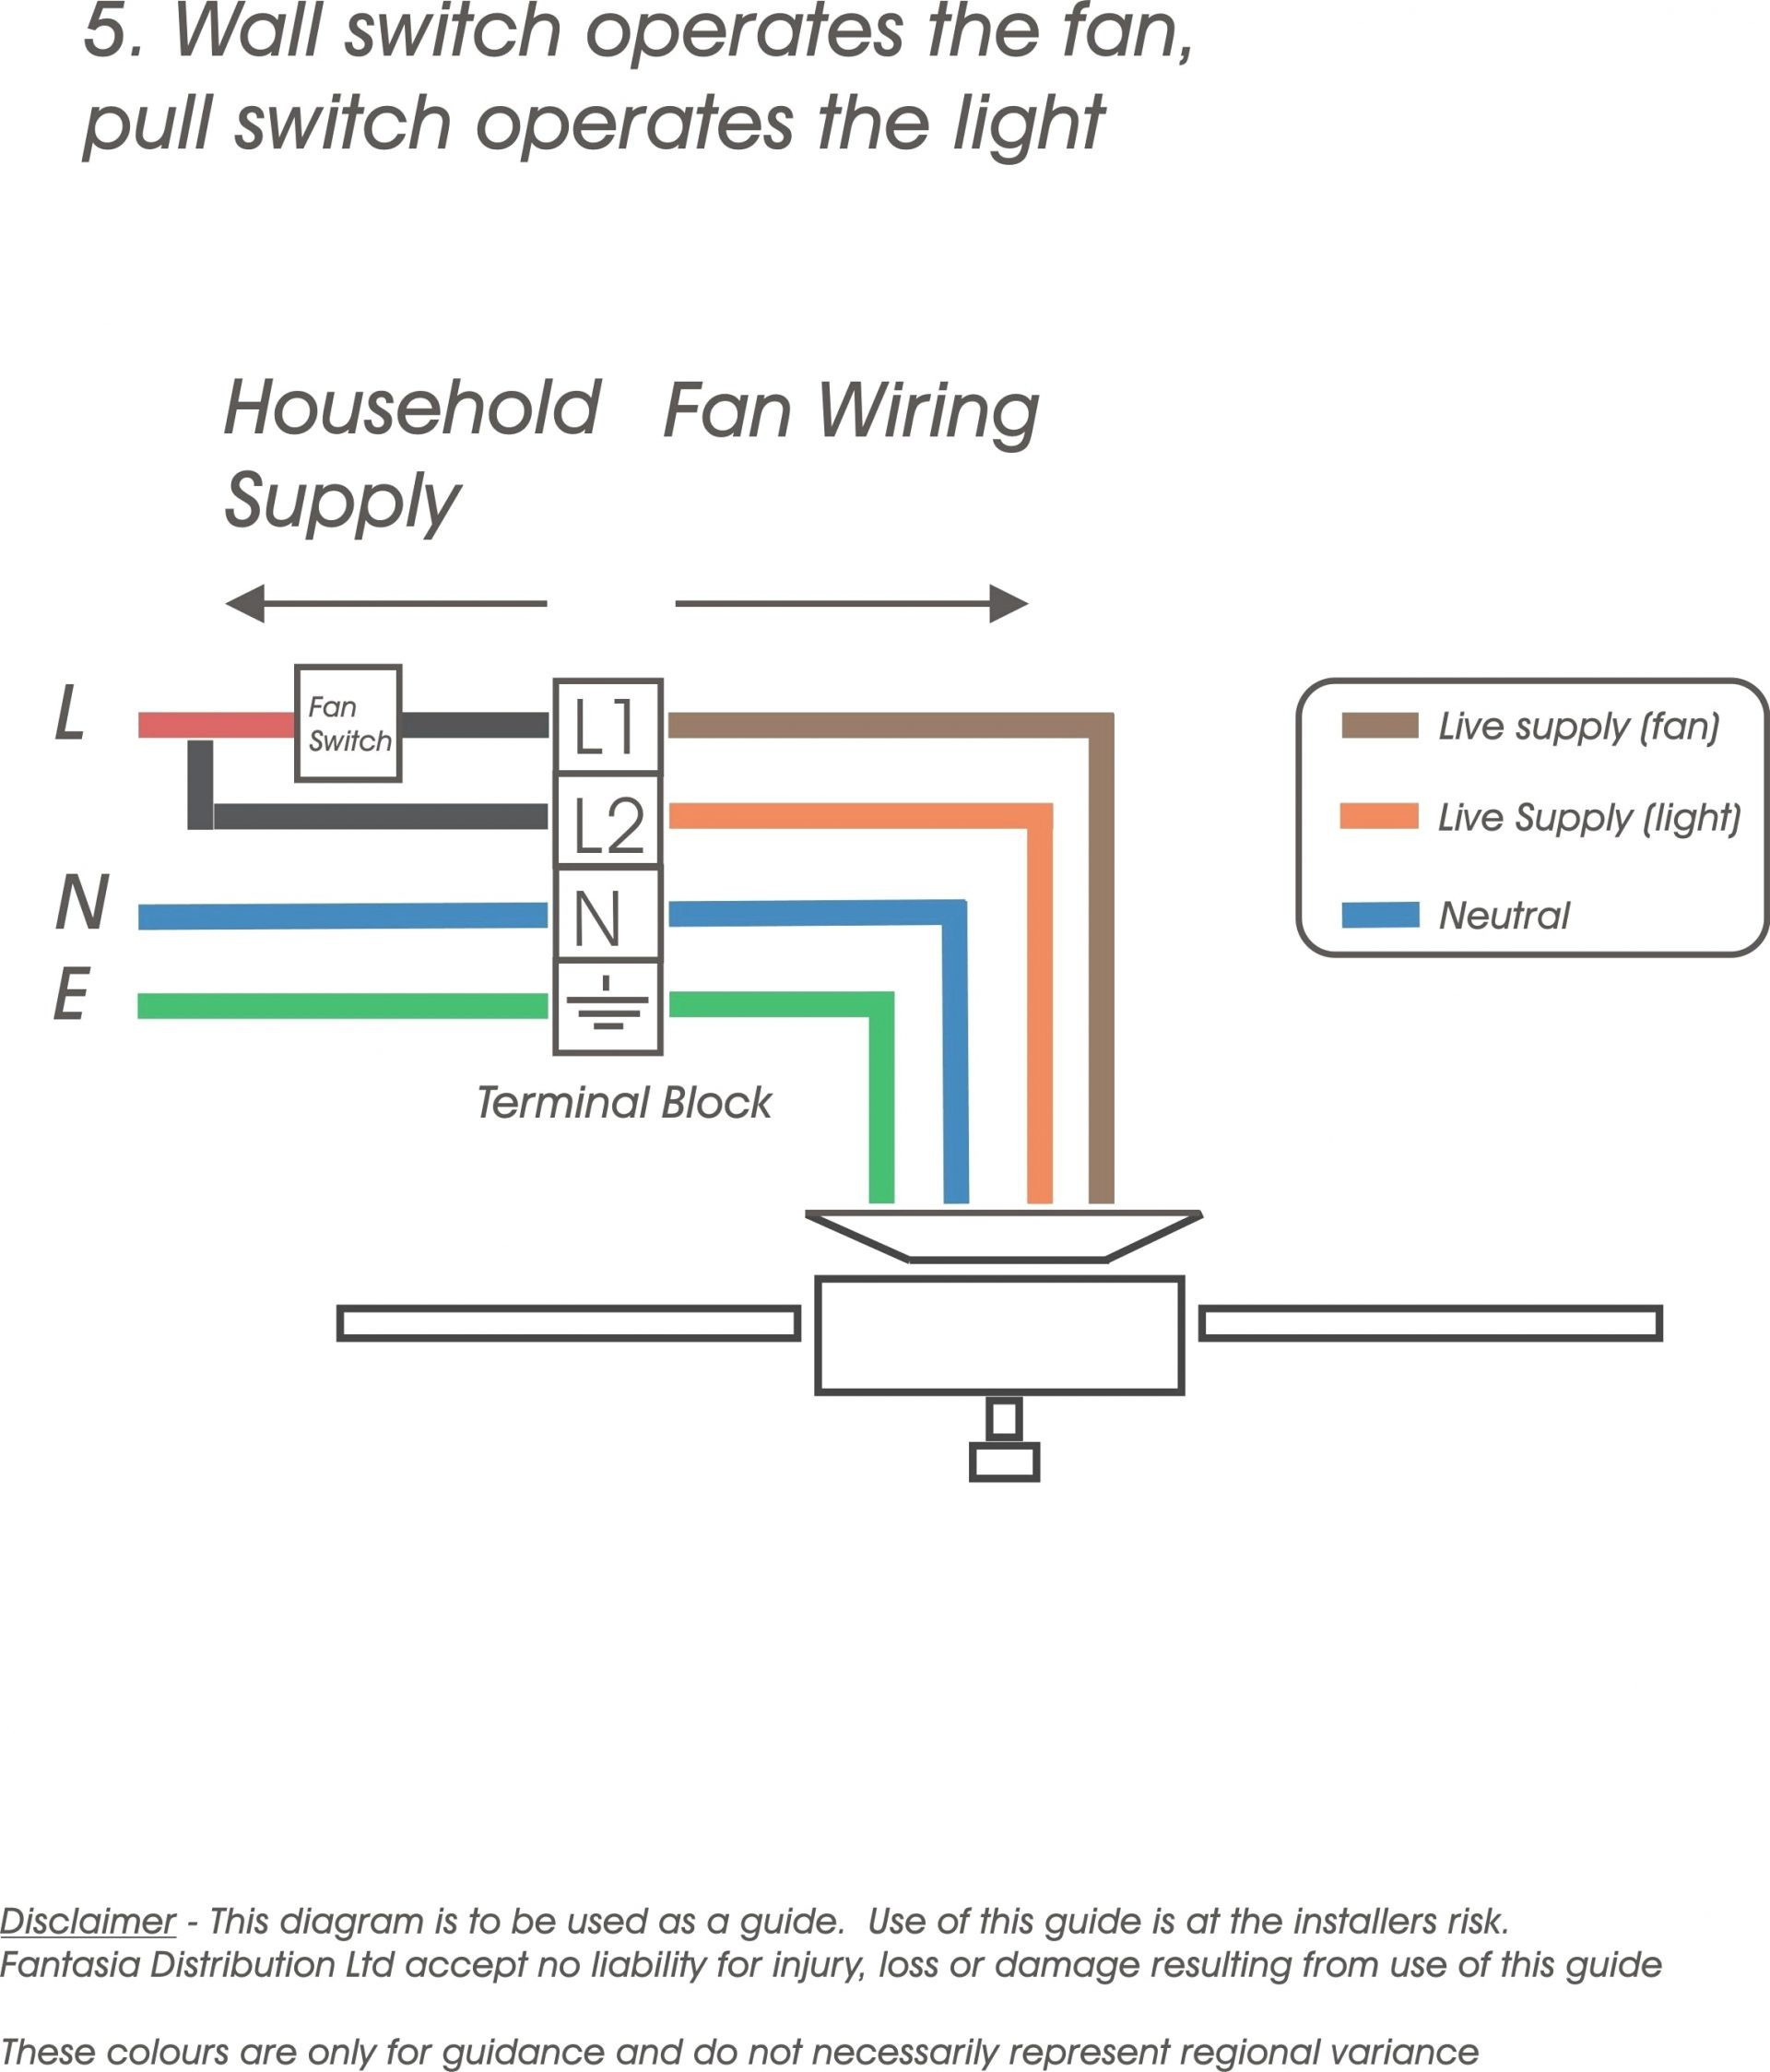 Gl450 Power Window Switch Wiring Diagram | Manual E-Books - Power Window Switch Wiring Diagram